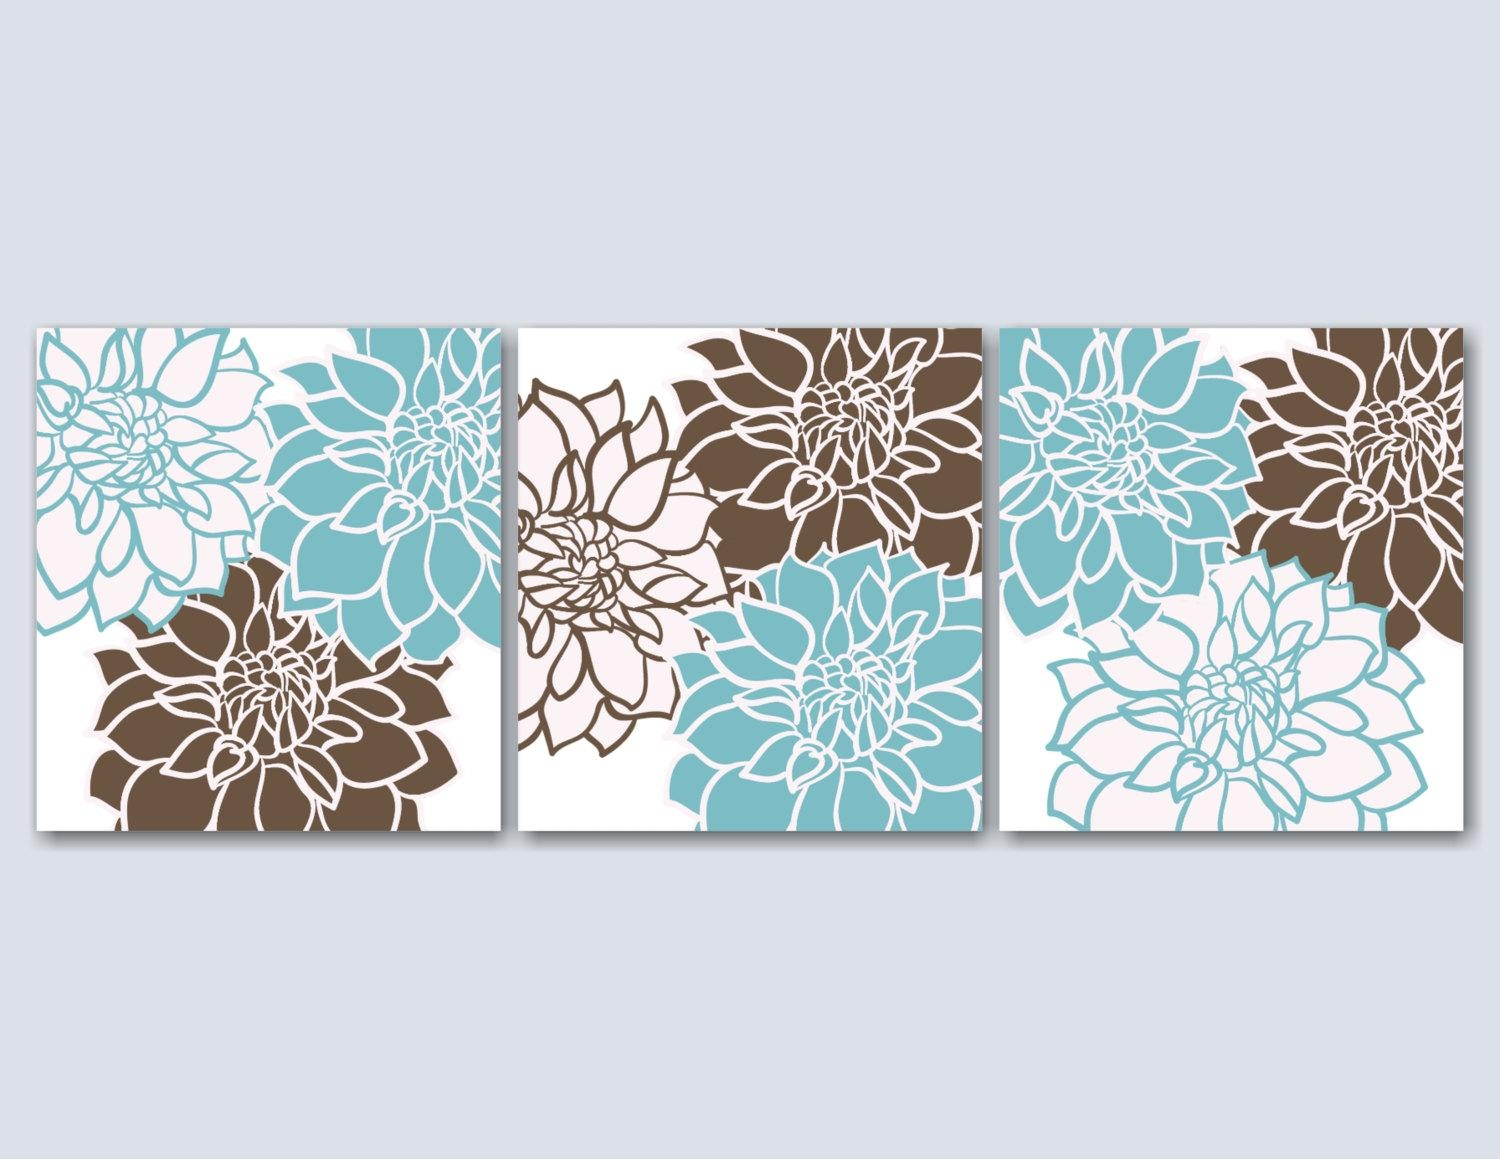 Teal Brown Bedroom Wall Artblue Brown Floral Wall Artbrown Throughout Turquoise And Brown Wall Art (View 2 of 20)